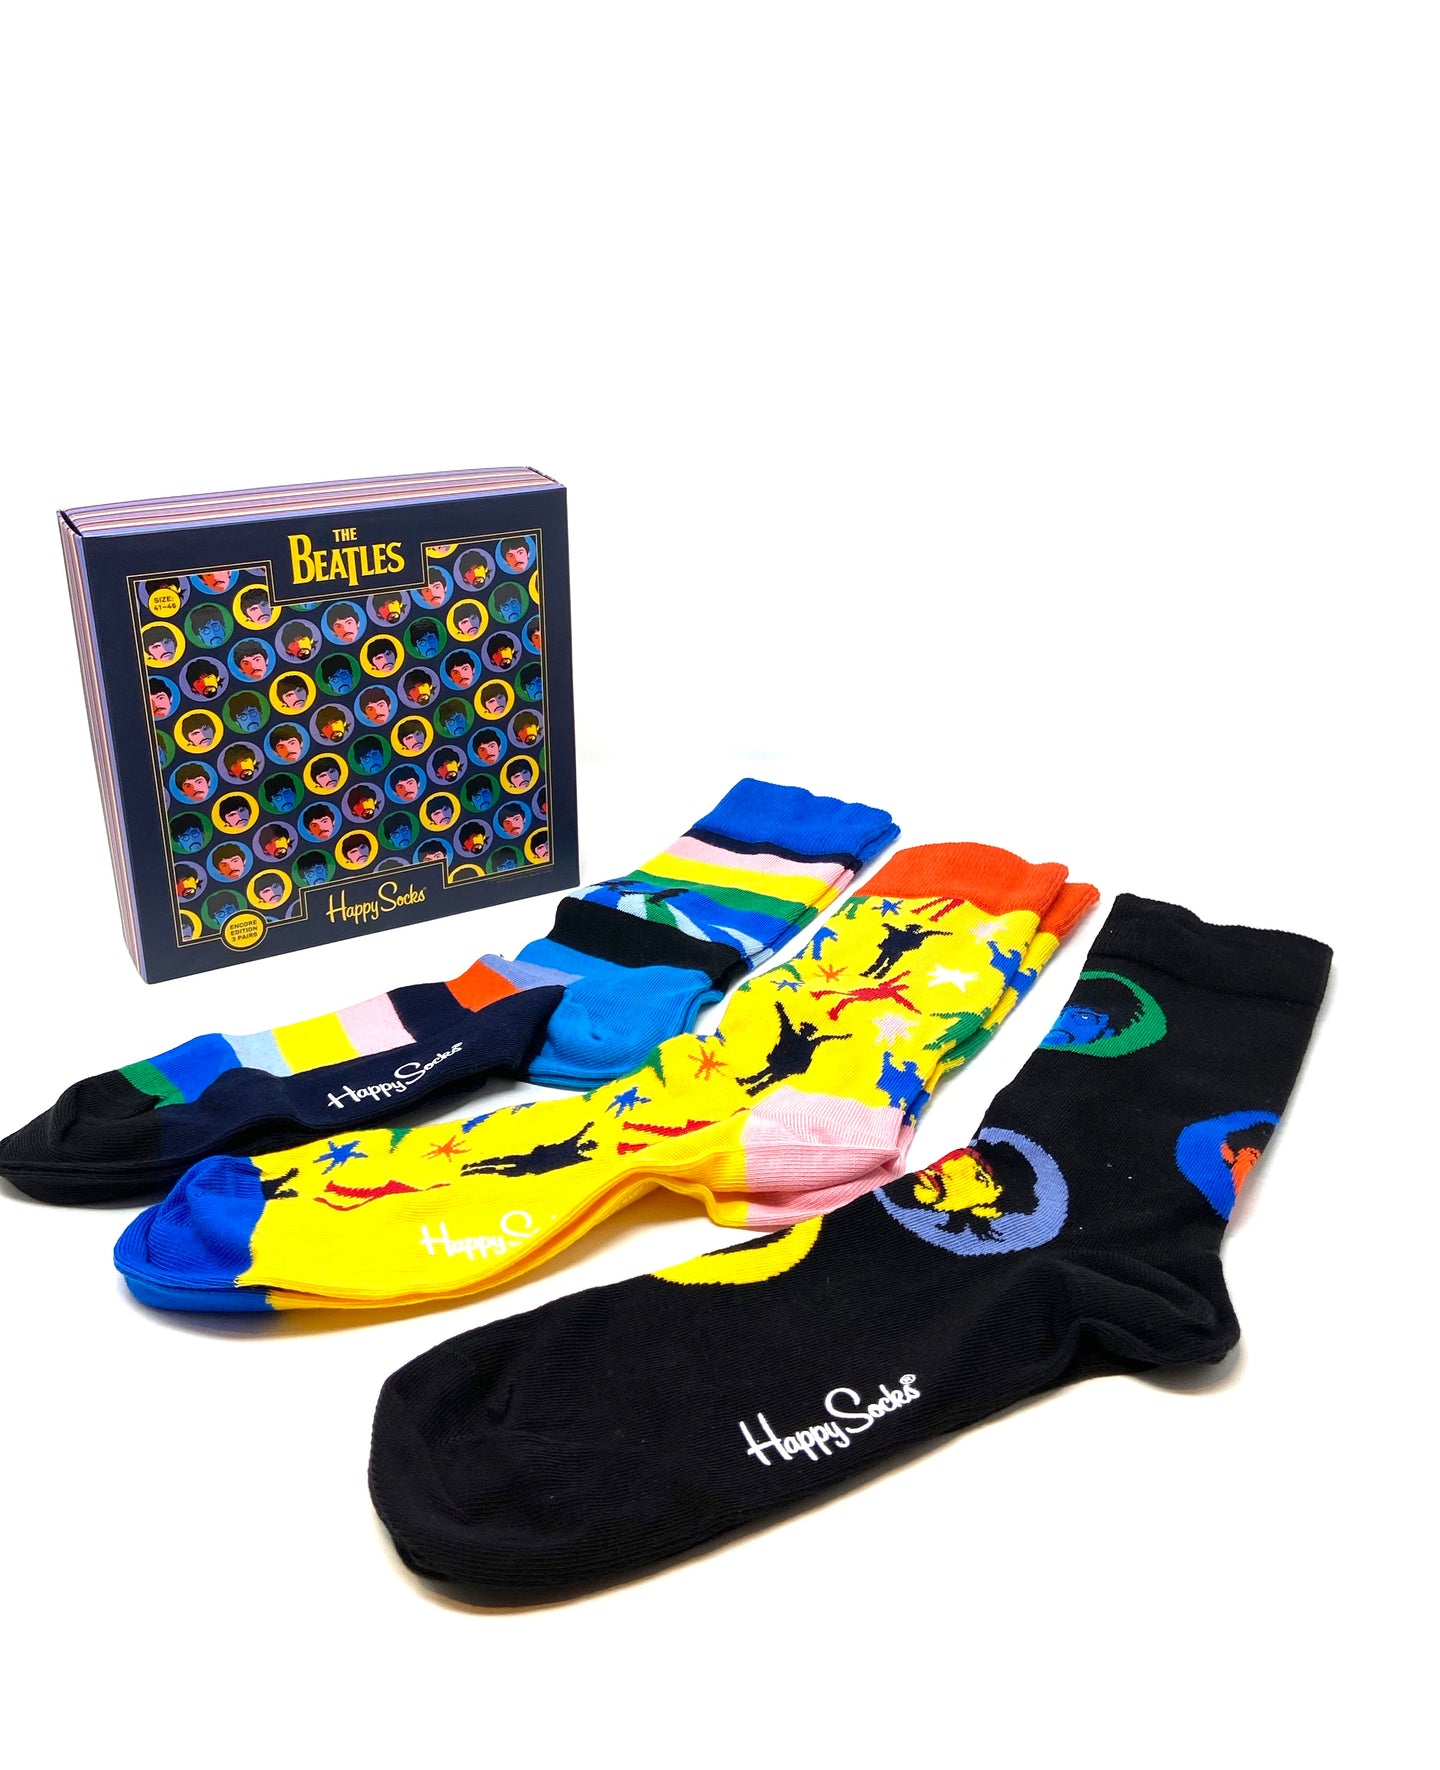 XBEA08 | Happy Socks 3 Pack Gift Box for sale online ireland beatles